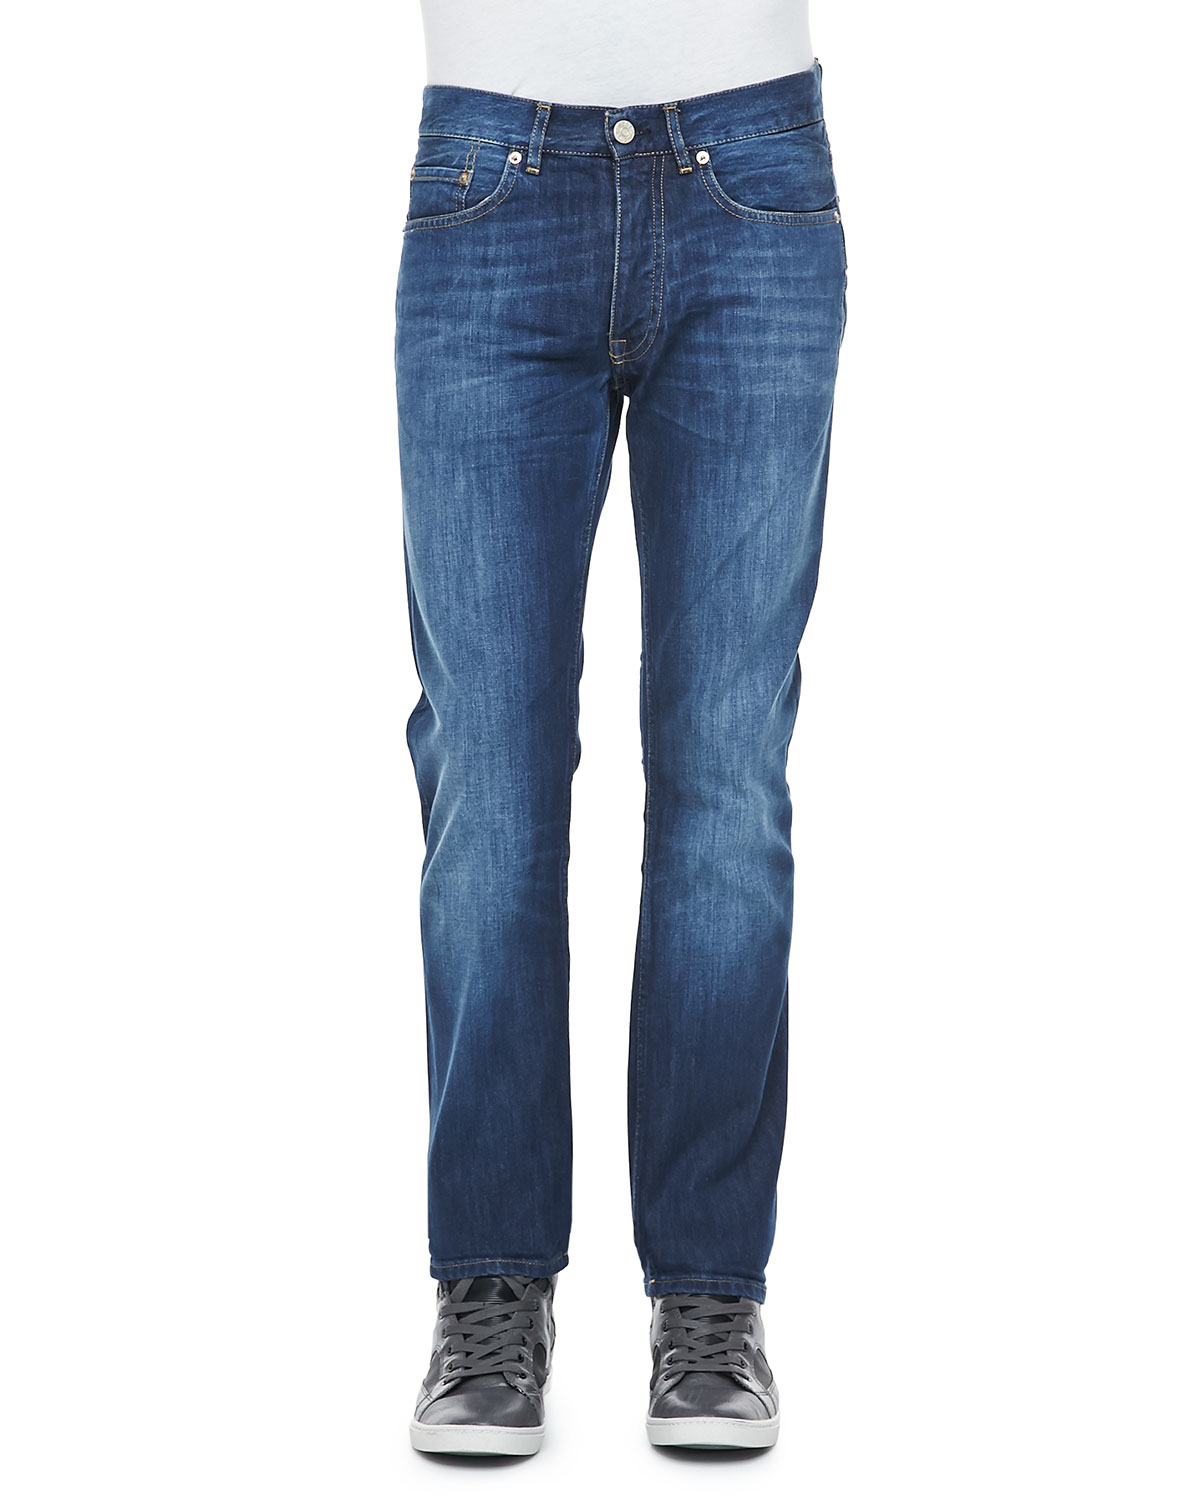 acne studios roc verakai slim fit jeans in blue for men lyst. Black Bedroom Furniture Sets. Home Design Ideas